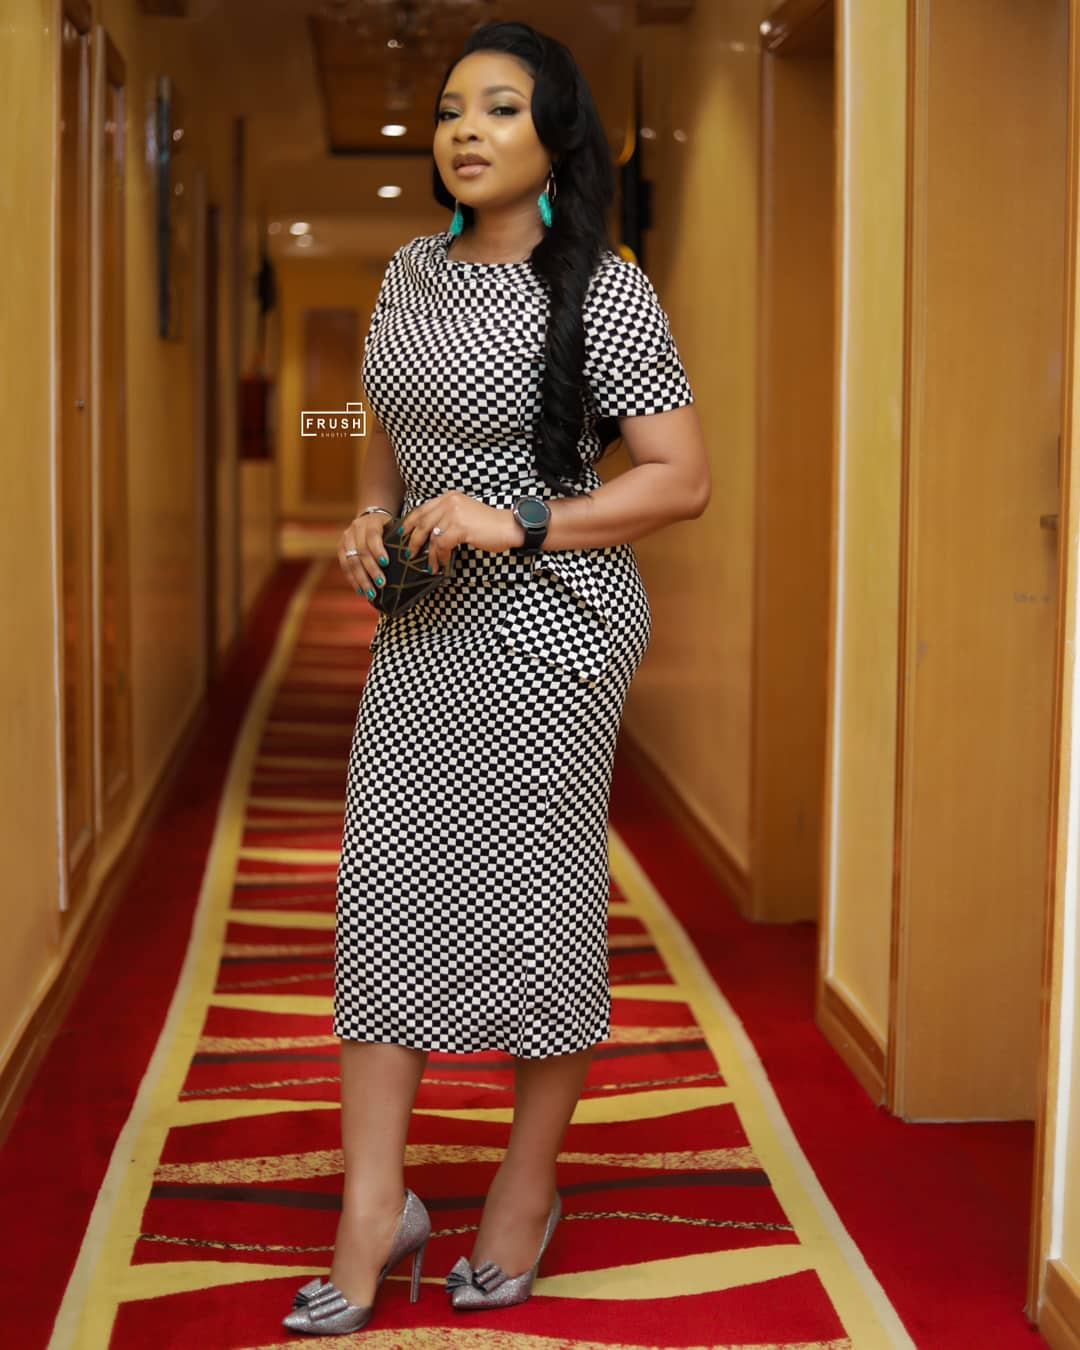 Linda Slaying Gown With Short Sleeve